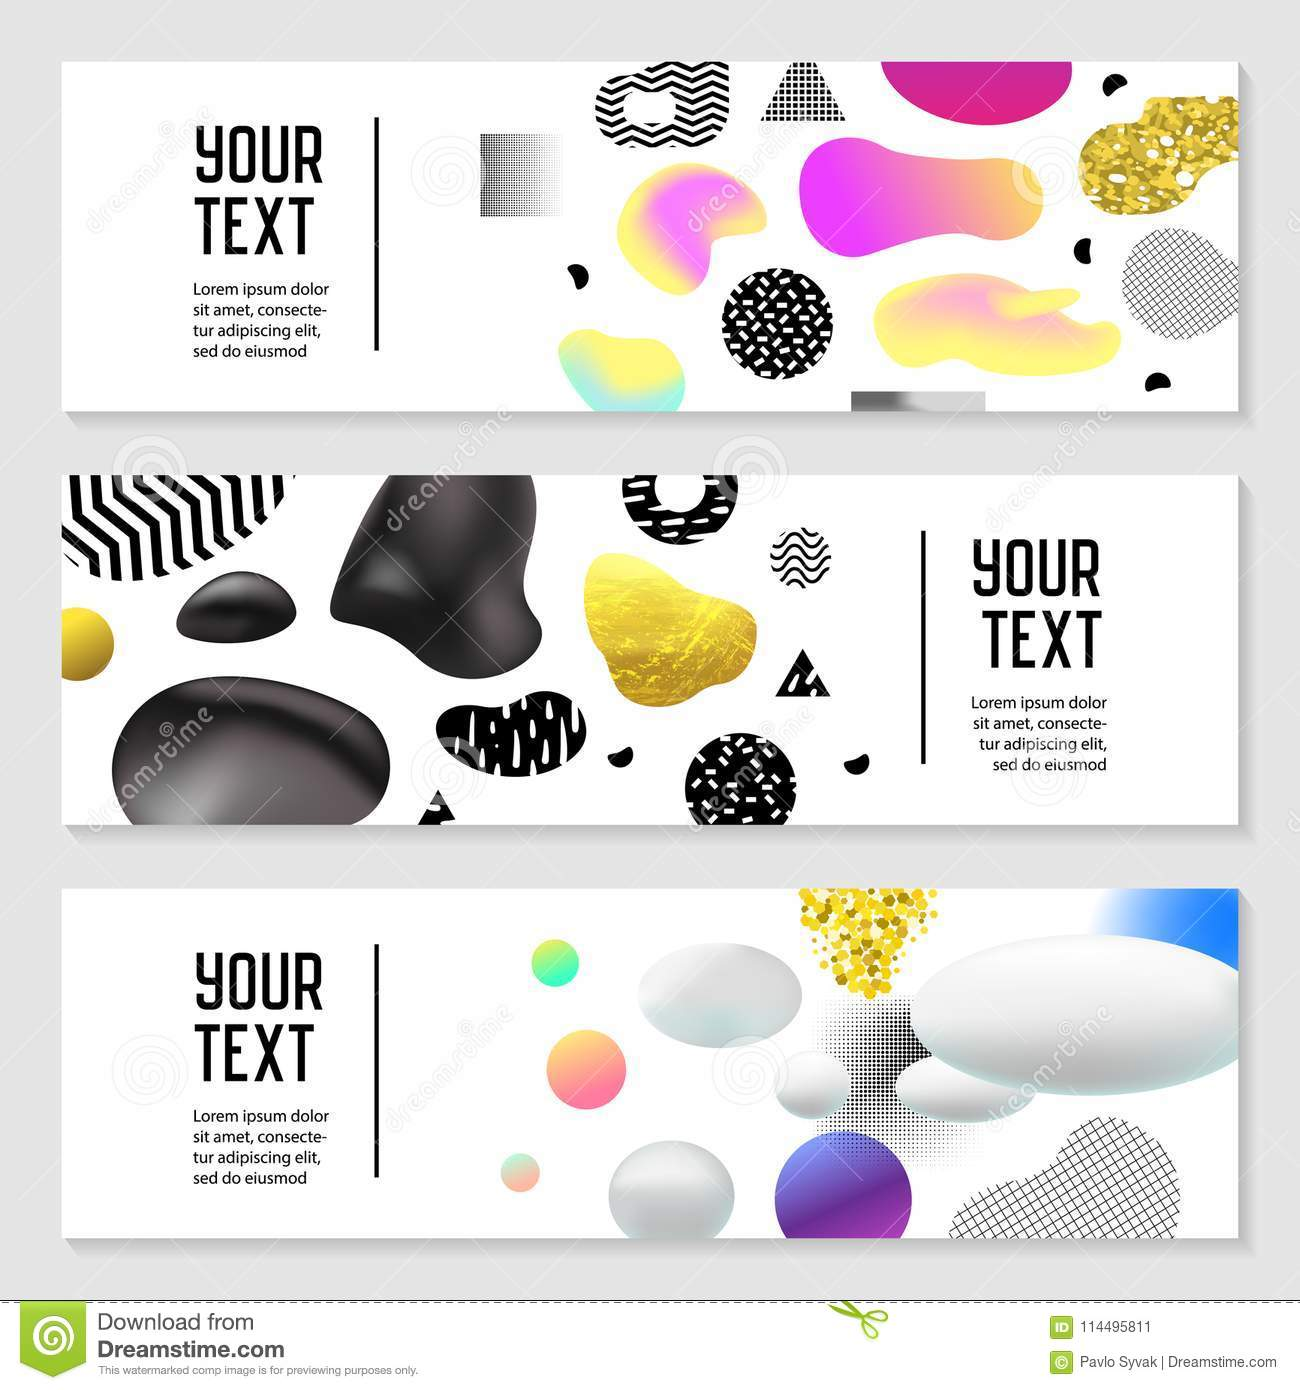 Horizontal Banners Set With Gold Glitter Fluid Shapes Poster